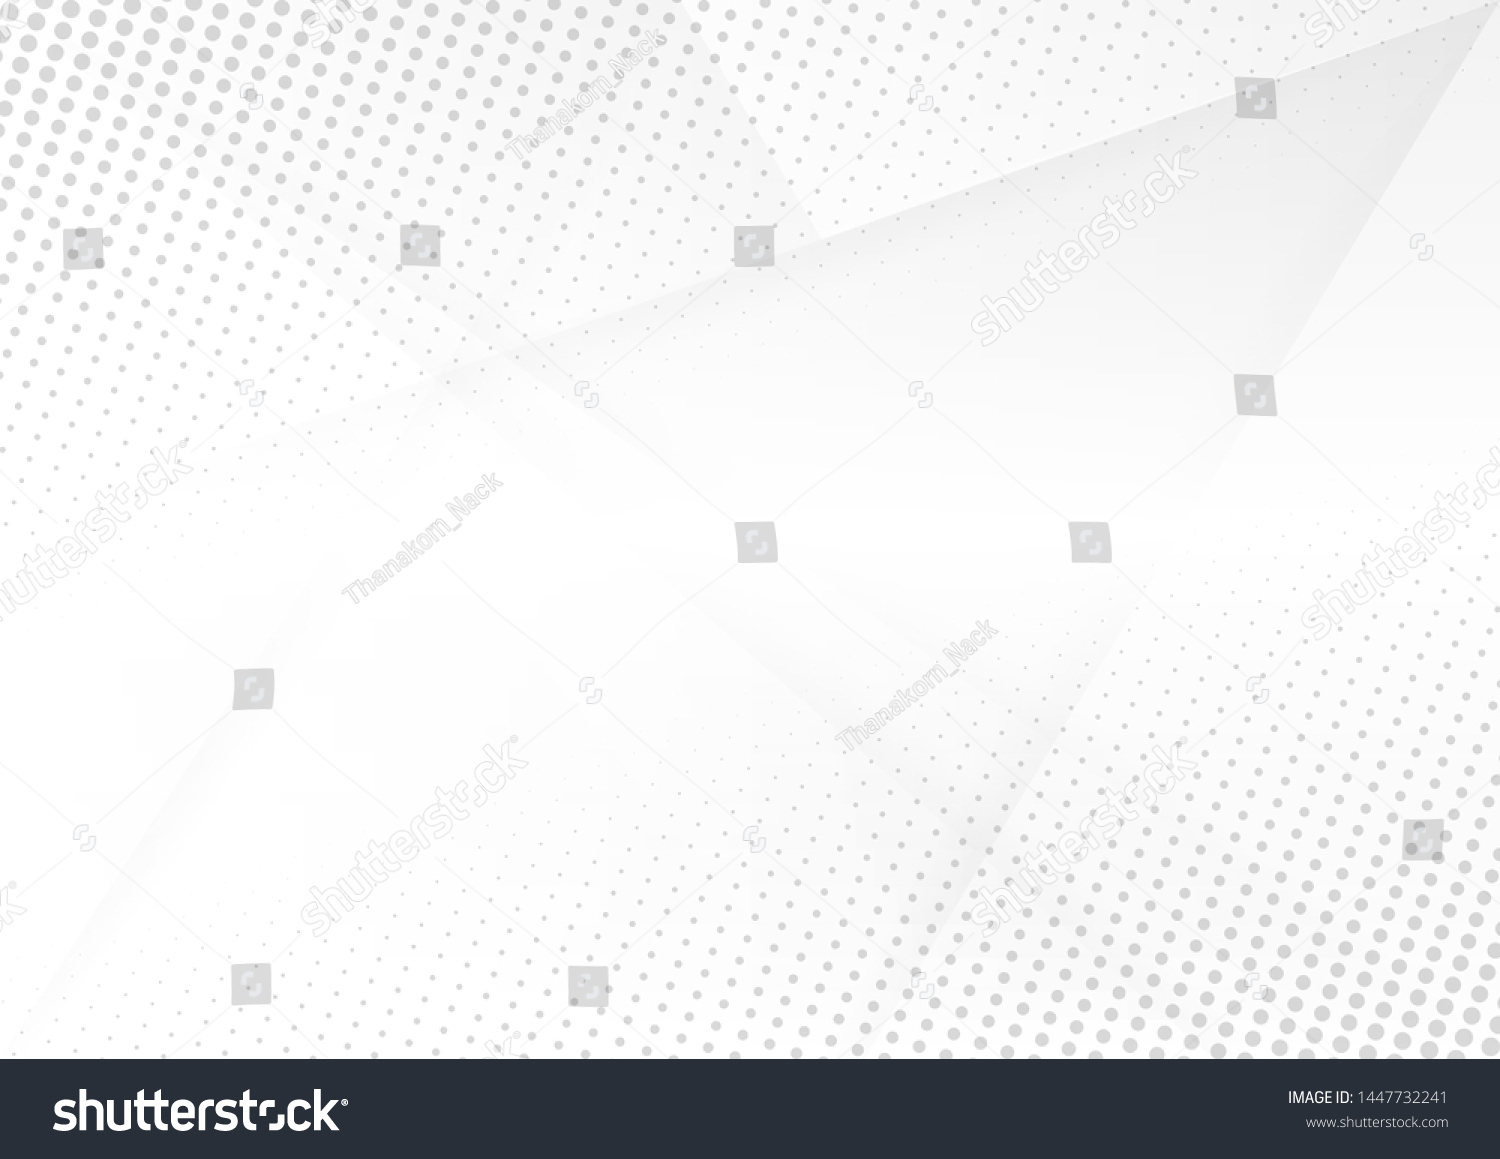 Abstract white and gray gradient background.Halftone dots design background.vector Illustration. #1447732241